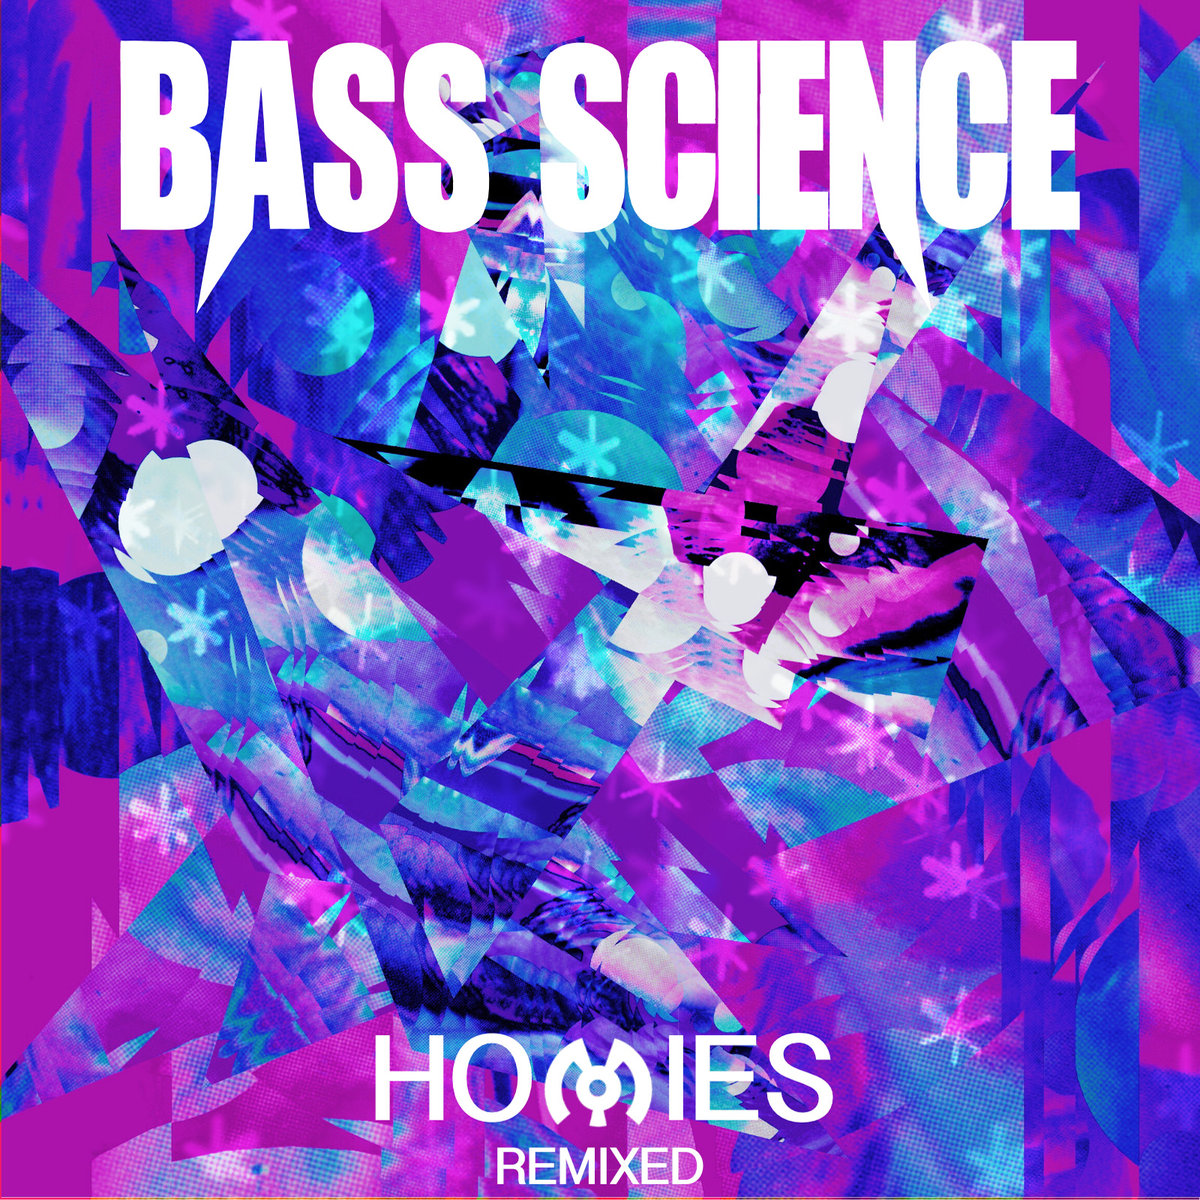 Bass Science - Drop It Heavy (Suspect Bitch Remix) @ 'Homies (Remixed)' album (electronic, dubstep)